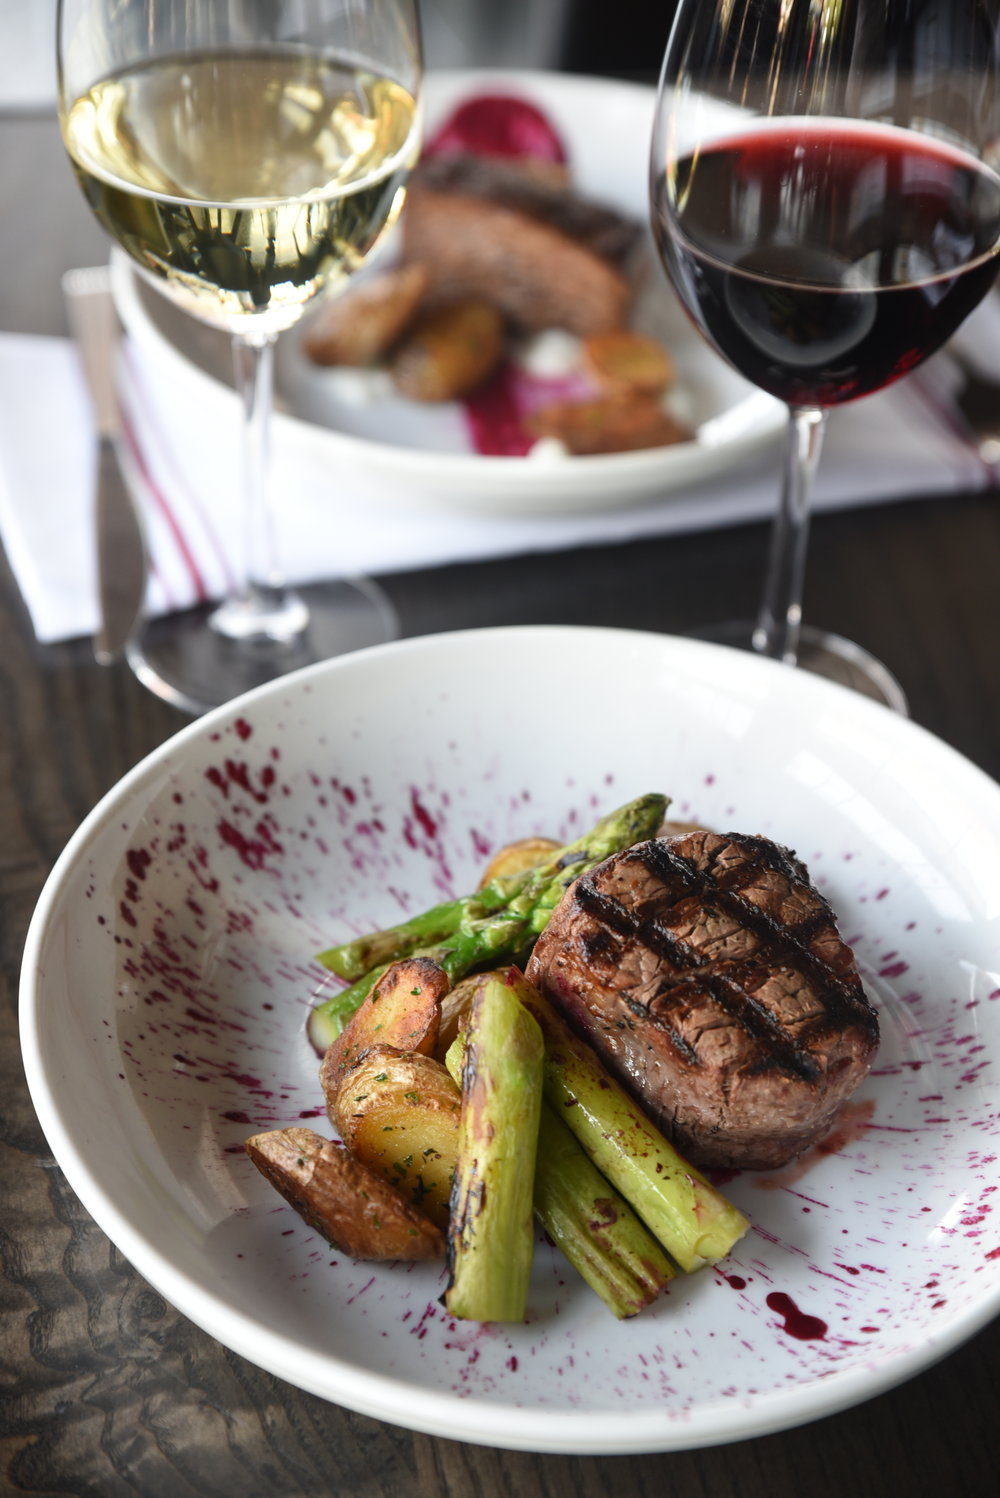 Filet Mignon with herb roasted fingerling potatoes, grilled asparagus & a red beet, port reduction.